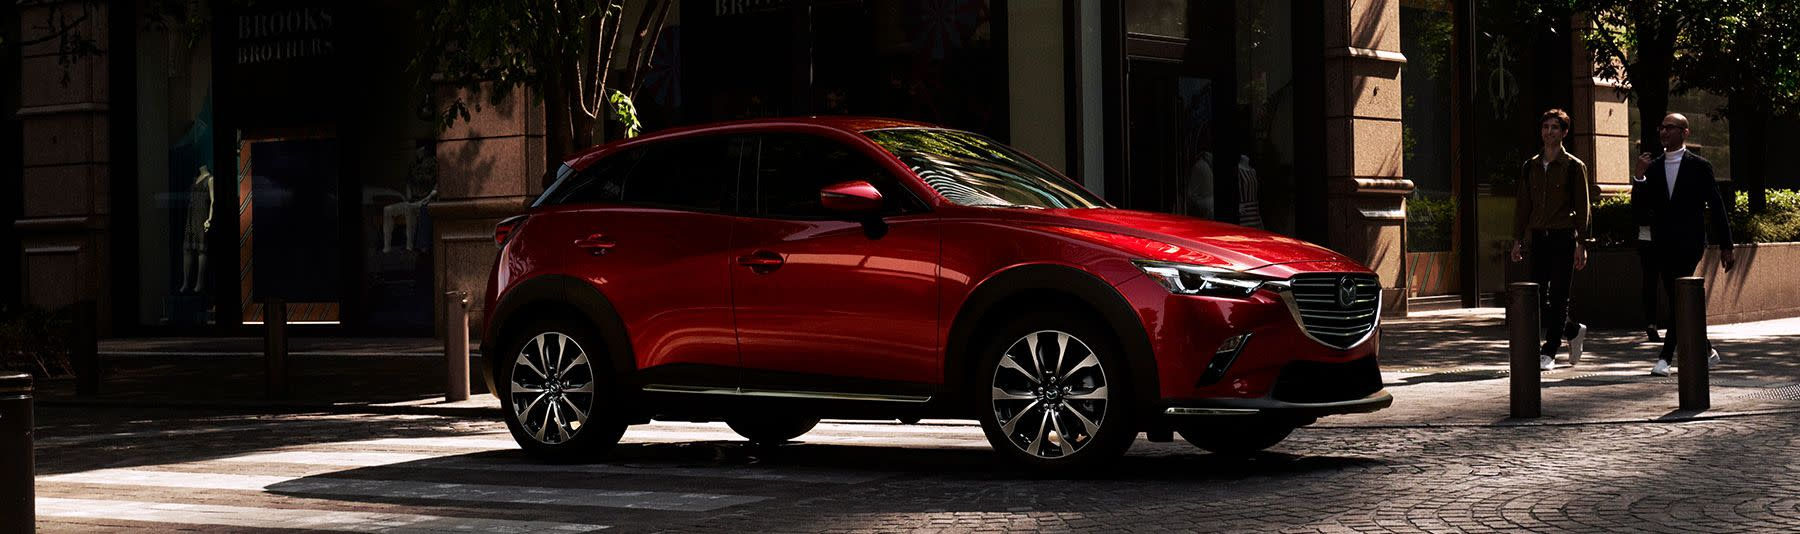 2019 Mazda CX-3 for Sale near Pasadena, TX